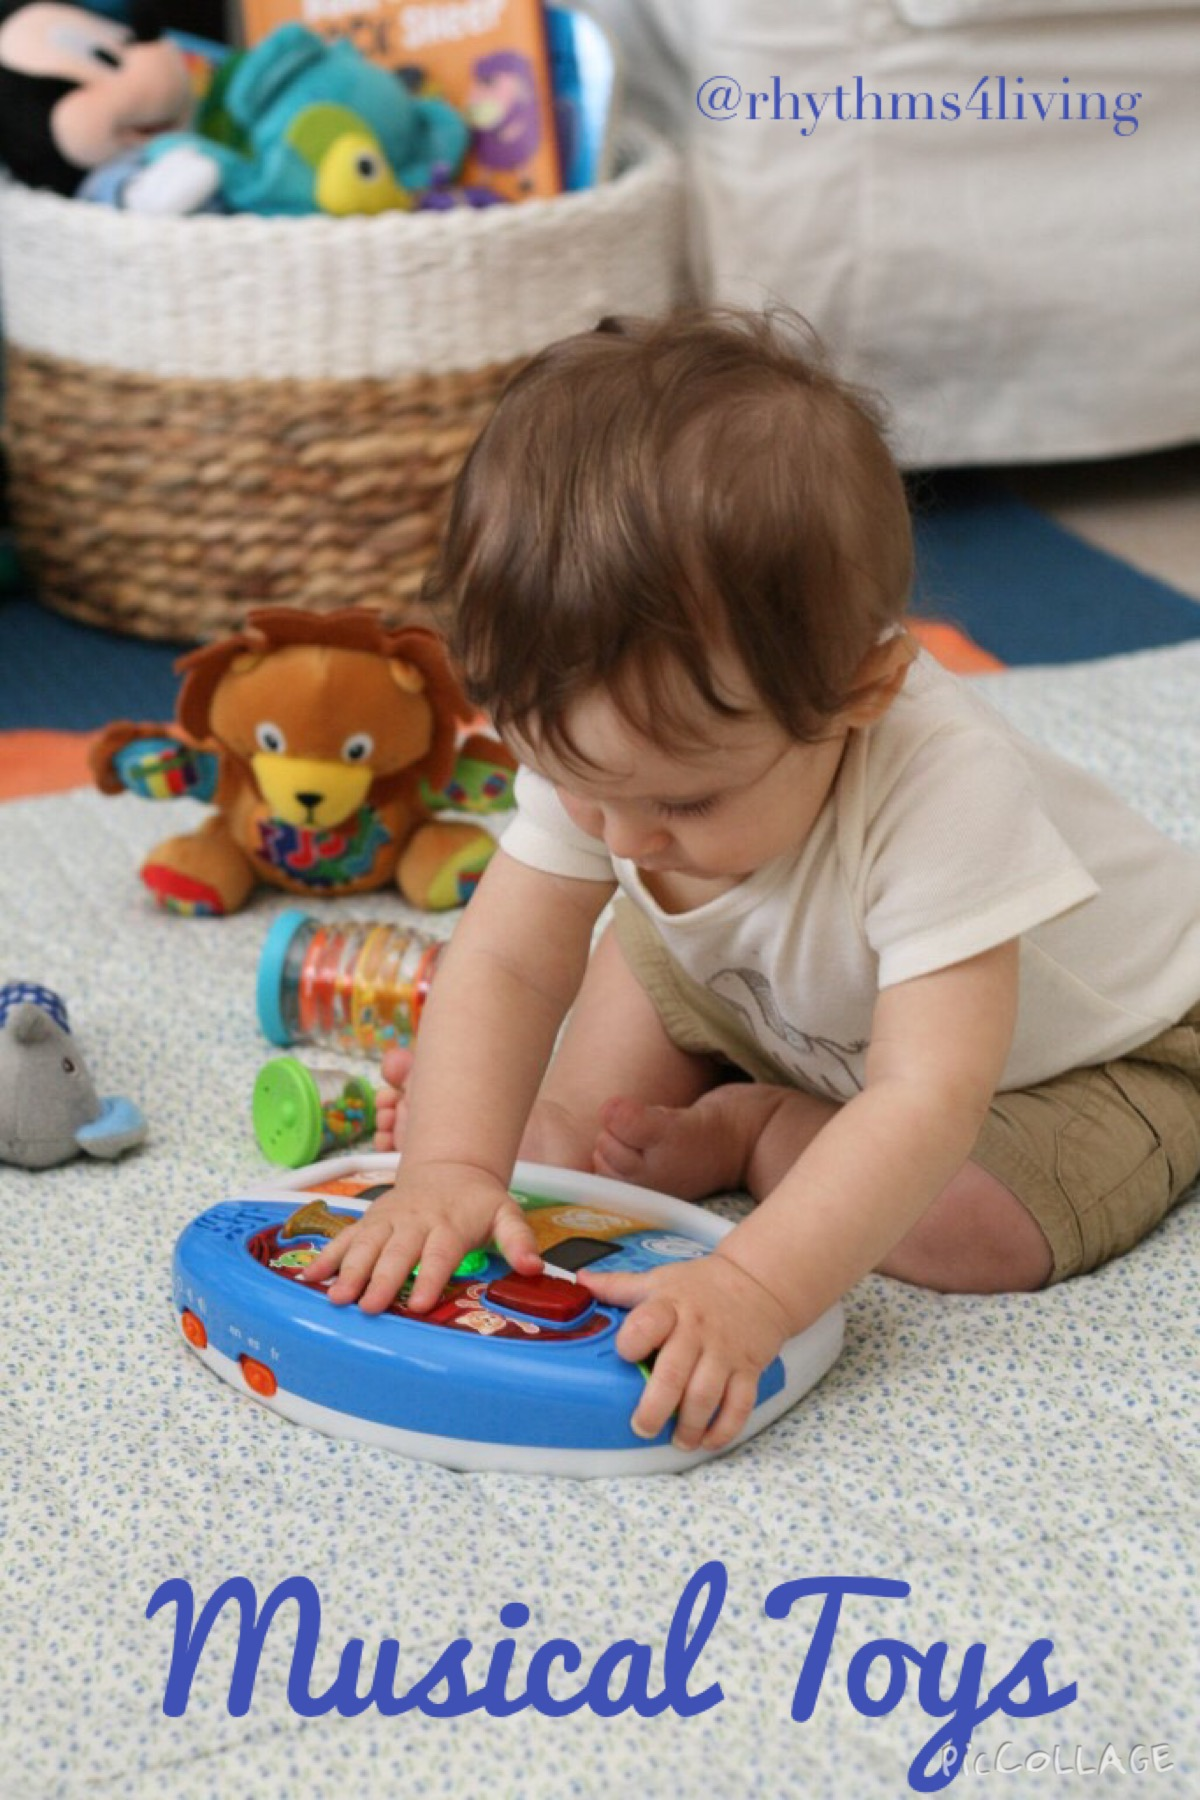 How I Use Music With My Son: Part 4 – Our Favorite Musical Toys